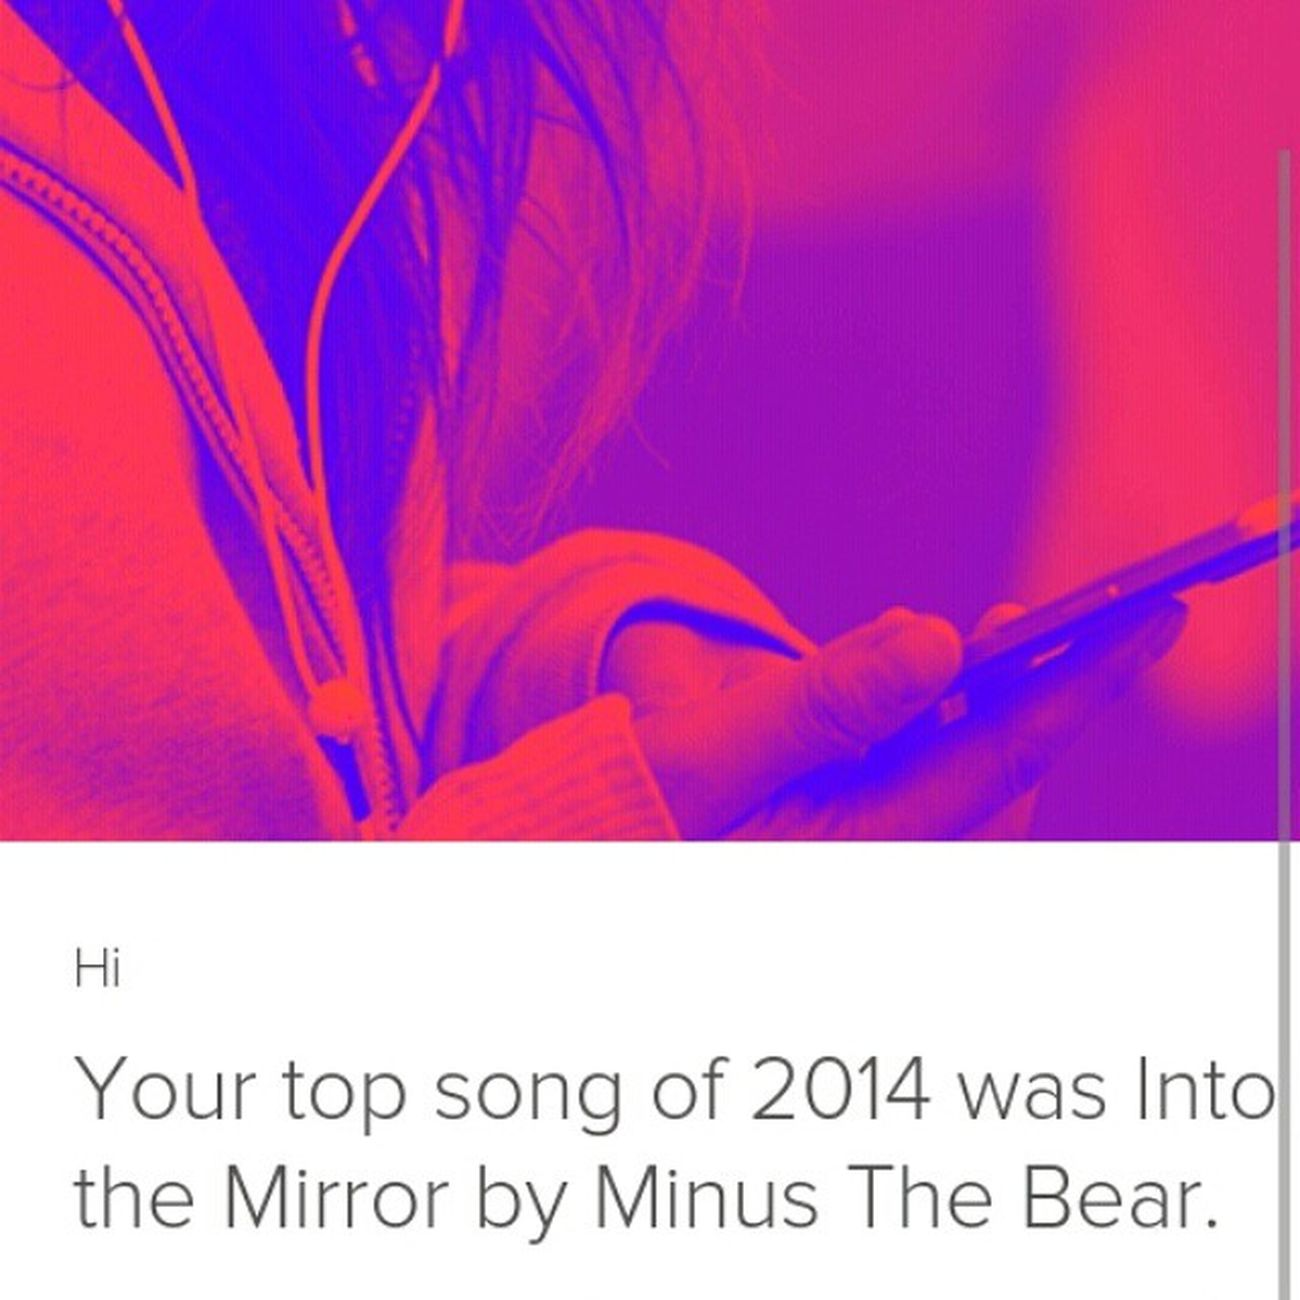 My Spotify song of the year into the mirror by Minusthebear MenosElOSo